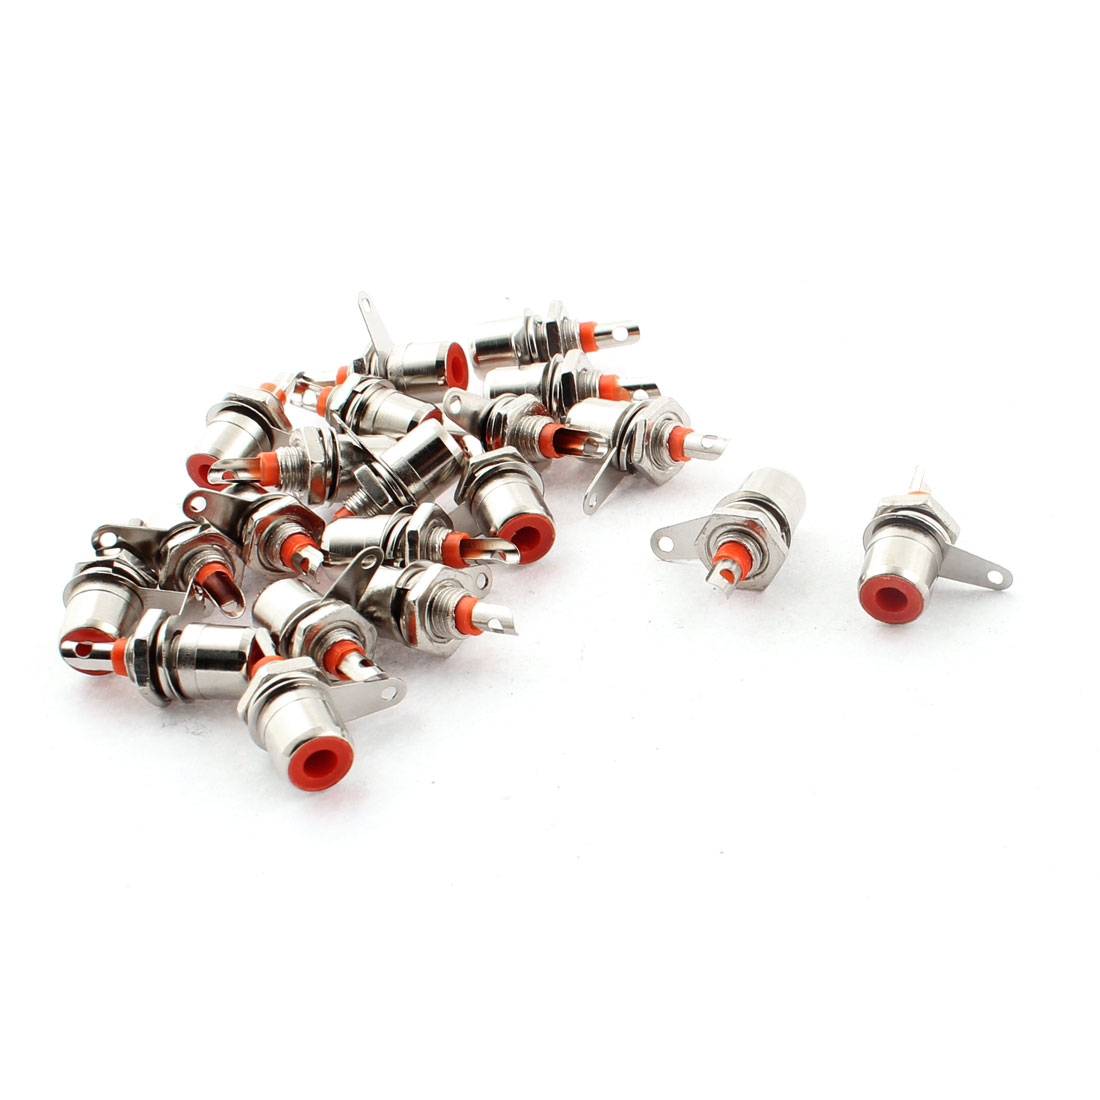 Amplifier Chassis Audio Video RCA Female Jack Socket Connector Silver Tone 20pcs